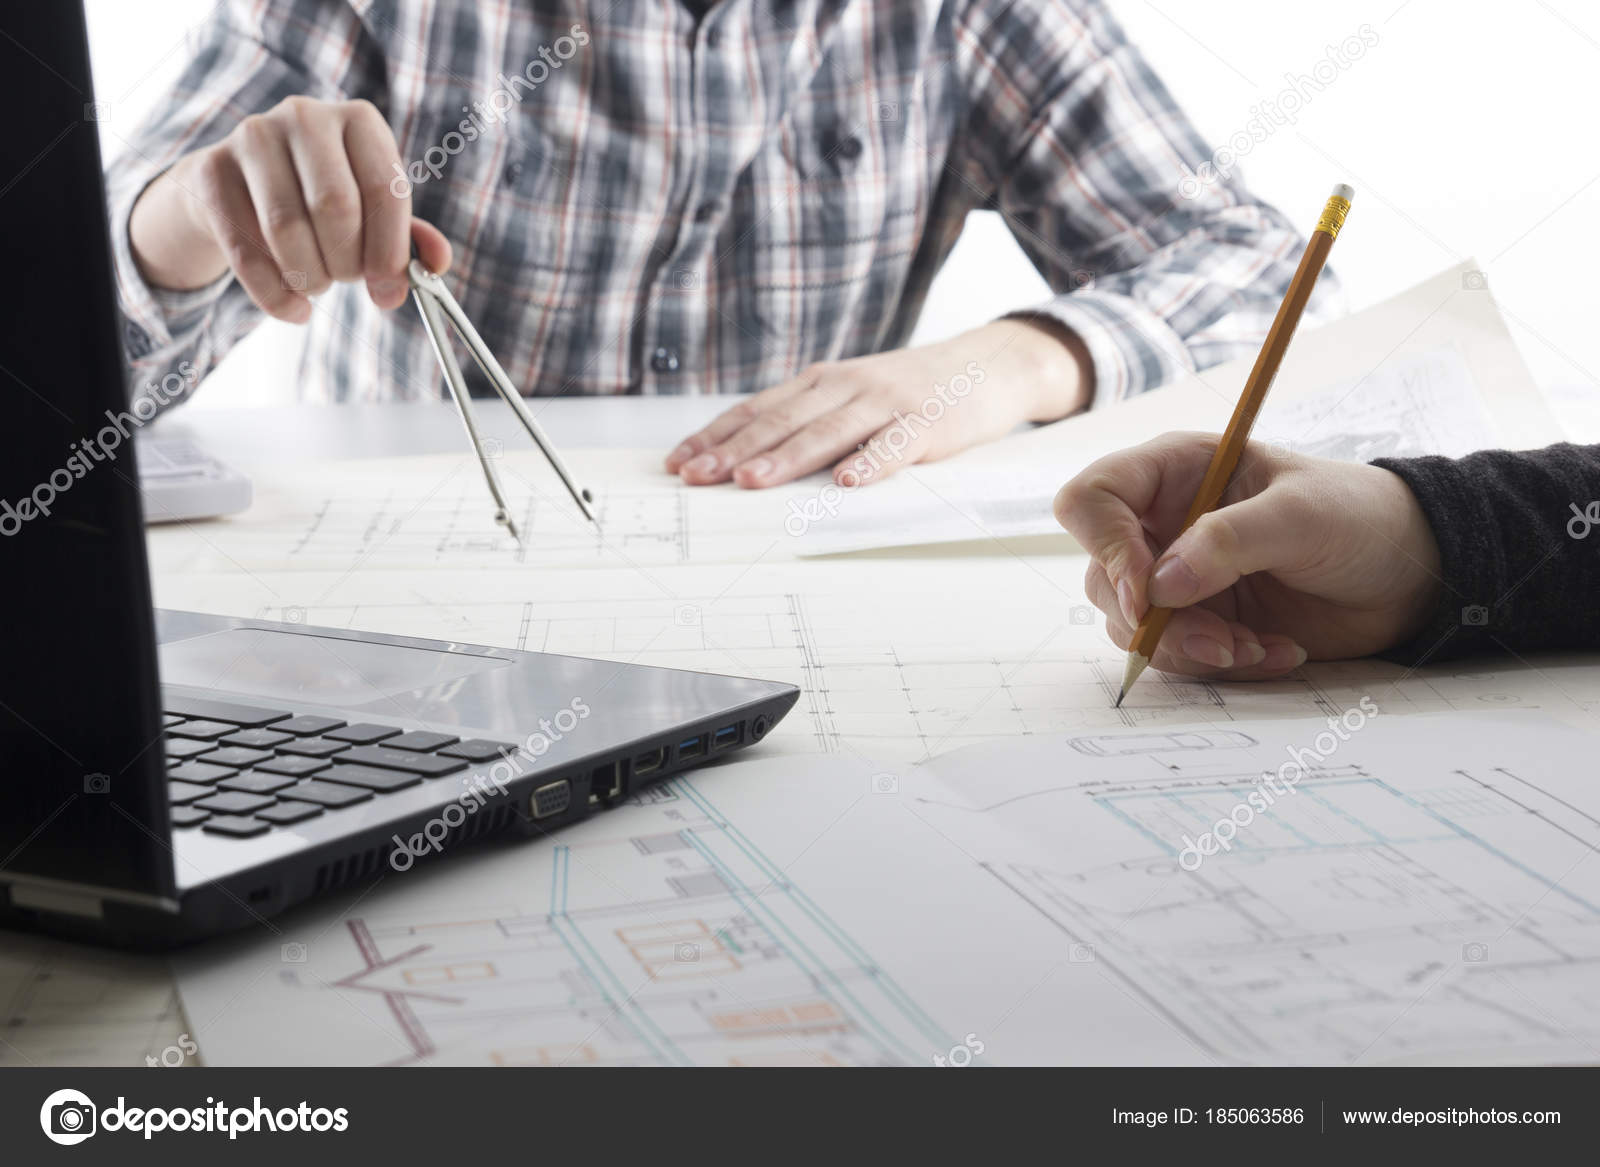 Architects working on blueprint real estate project architect architects working on blueprint architects workplace architectural project blueprints ruler calculator laptop and divider compass construction malvernweather Image collections